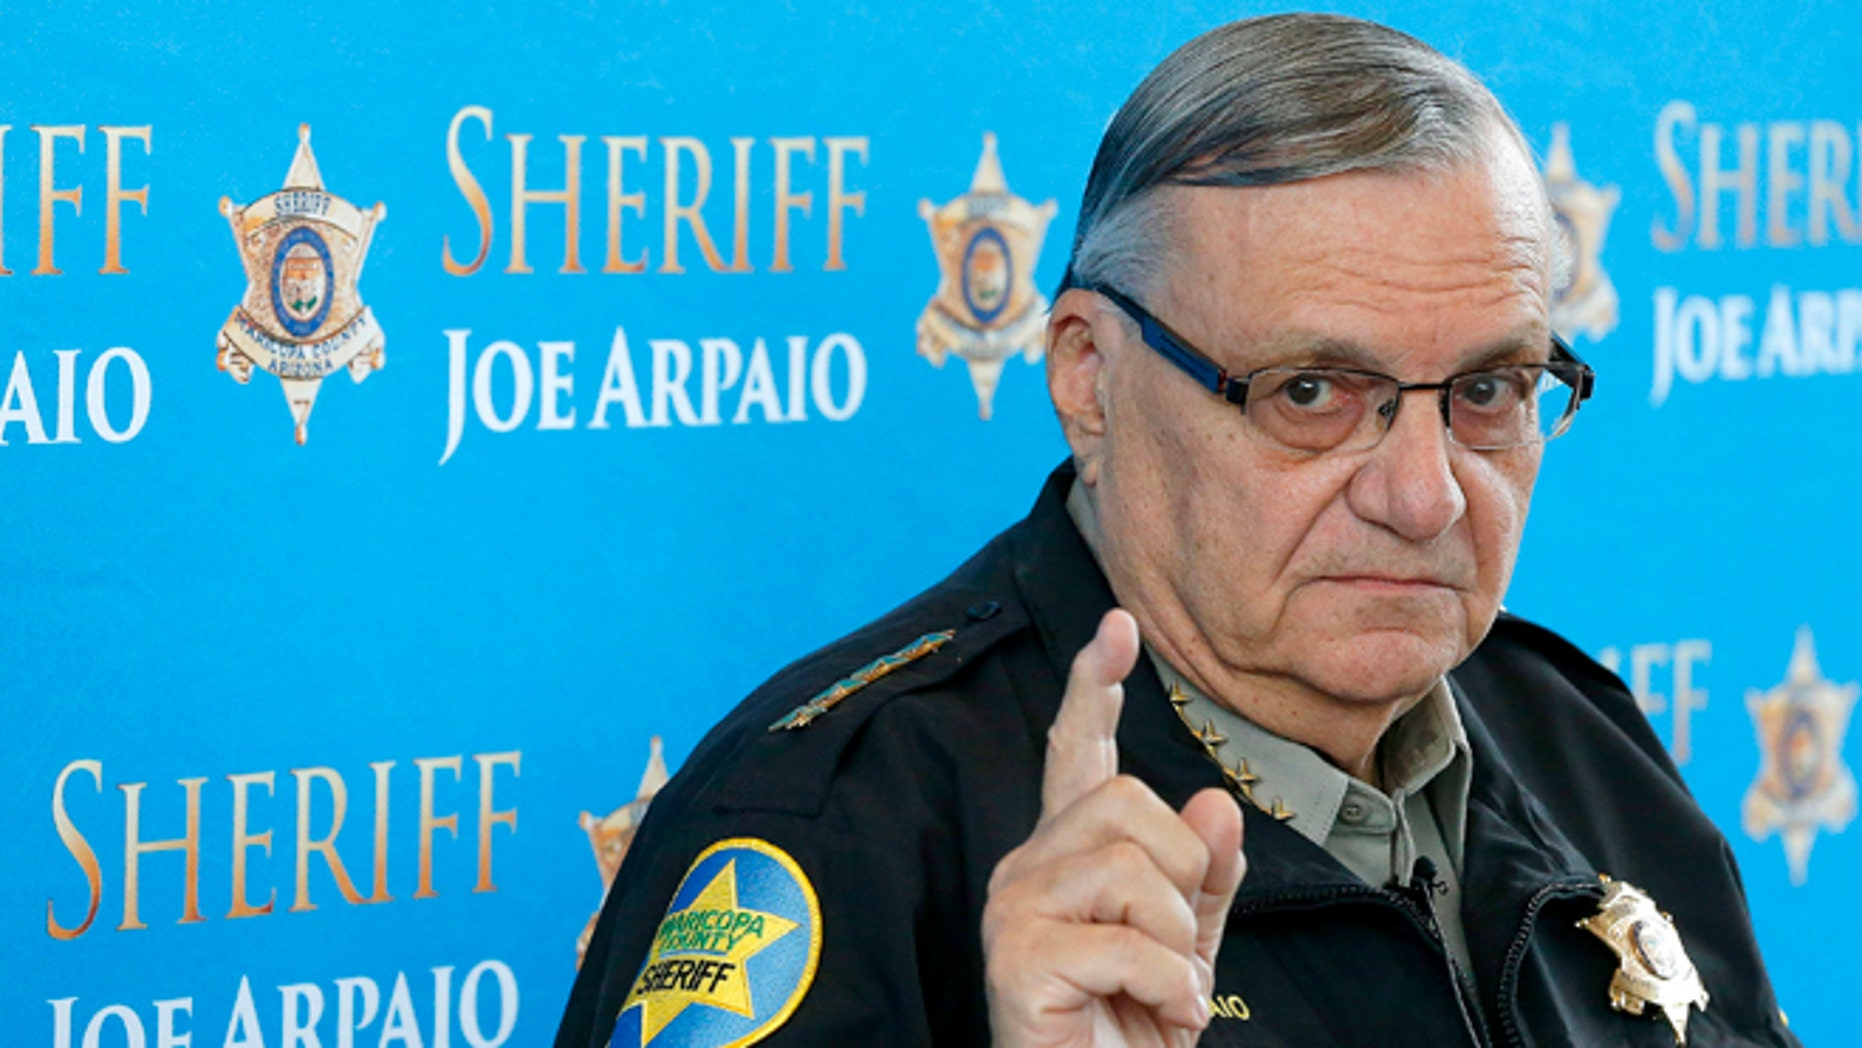 FILE - In this Dec. 18, 2013, file photo, Maricopa County Sheriff Joe Arpaio pauses as he answers a question at a news conference at Maricopa County Sheriff's Office Headquarters in Phoenix. County officials are holding a closed-door meeting Thursday to consider action in two lawsuits that accuse Arpaio of abusing his powers. A court is scheduled Wednesday, Dec. 3, 2014, to hear arguments in Maricopa County Sheriff Joe Arpaio's appeal of a ruling that concluded his officers have systematically racially profiled Latinos in vehicle stops. (AP Photo/Ross D. Franklin, File)